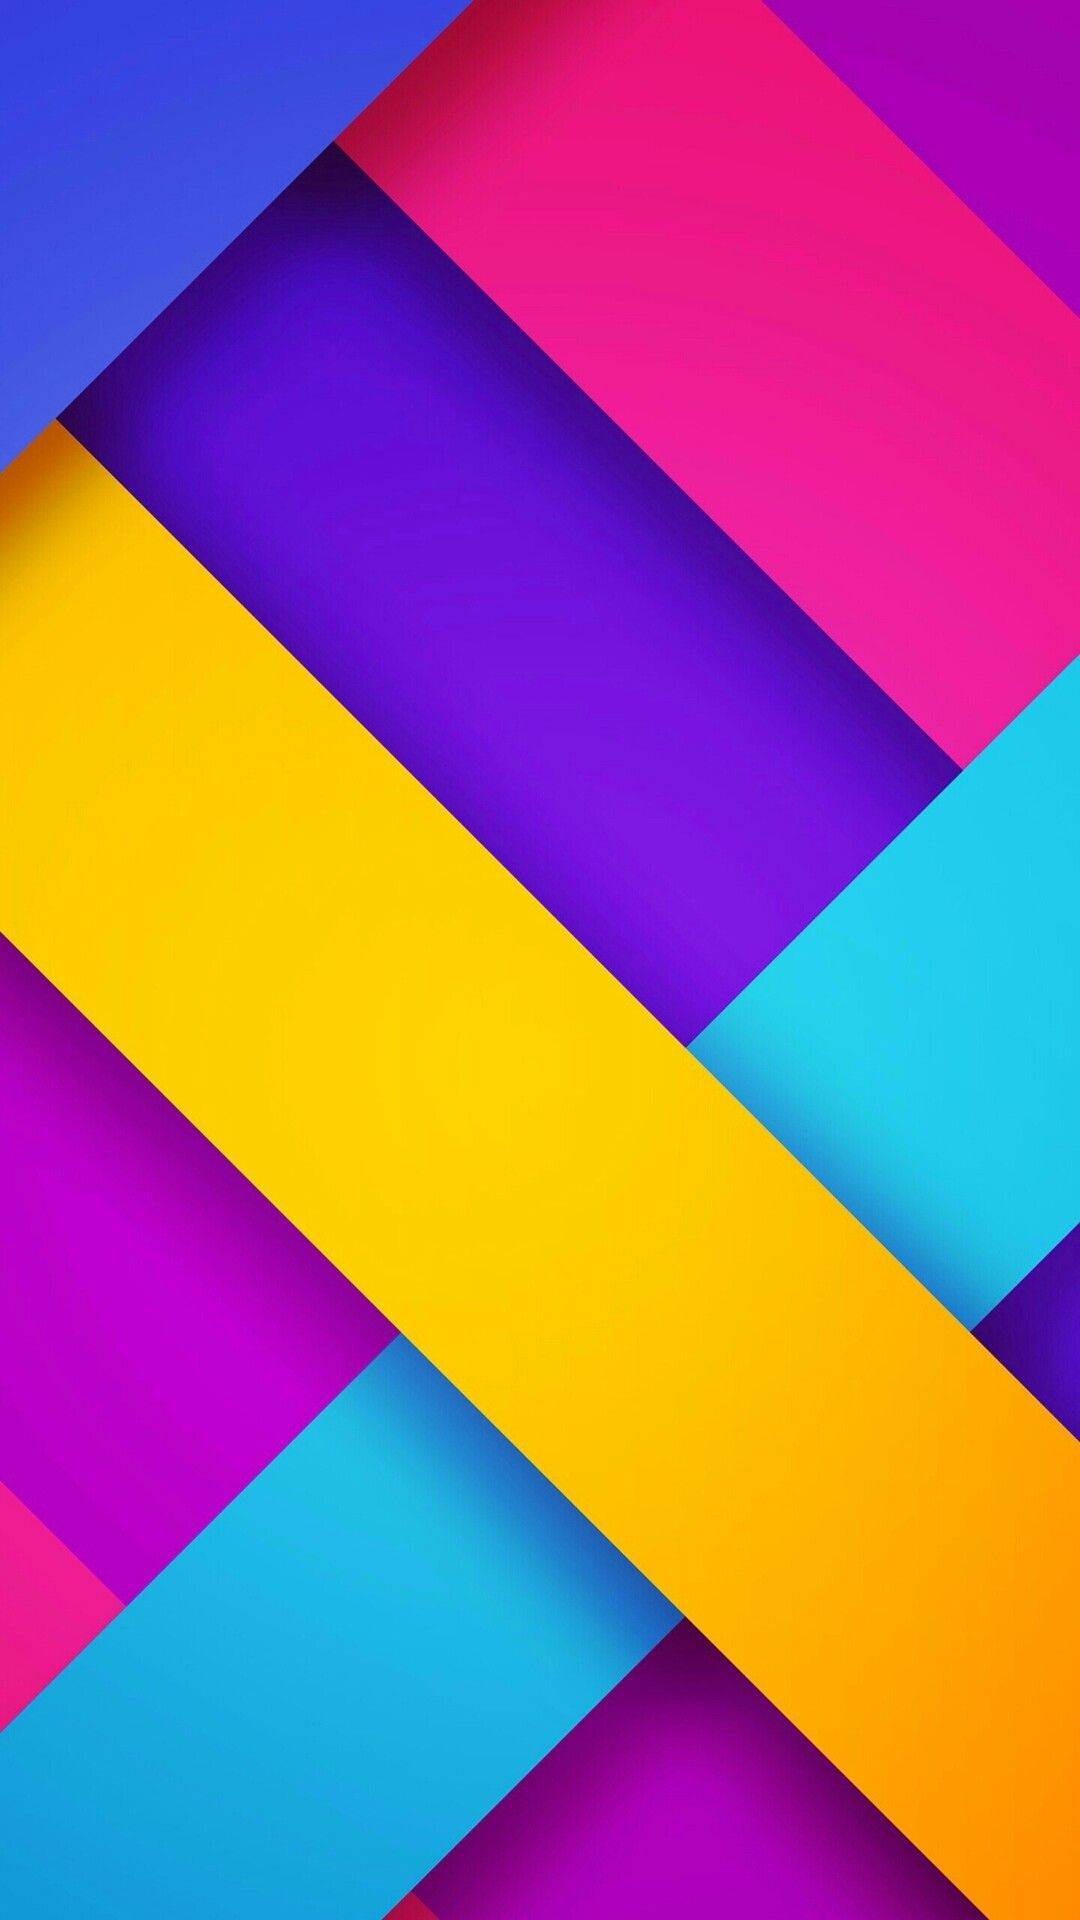 Colorful Wallpaper In 2019 Colorful Wallpaper Geometric